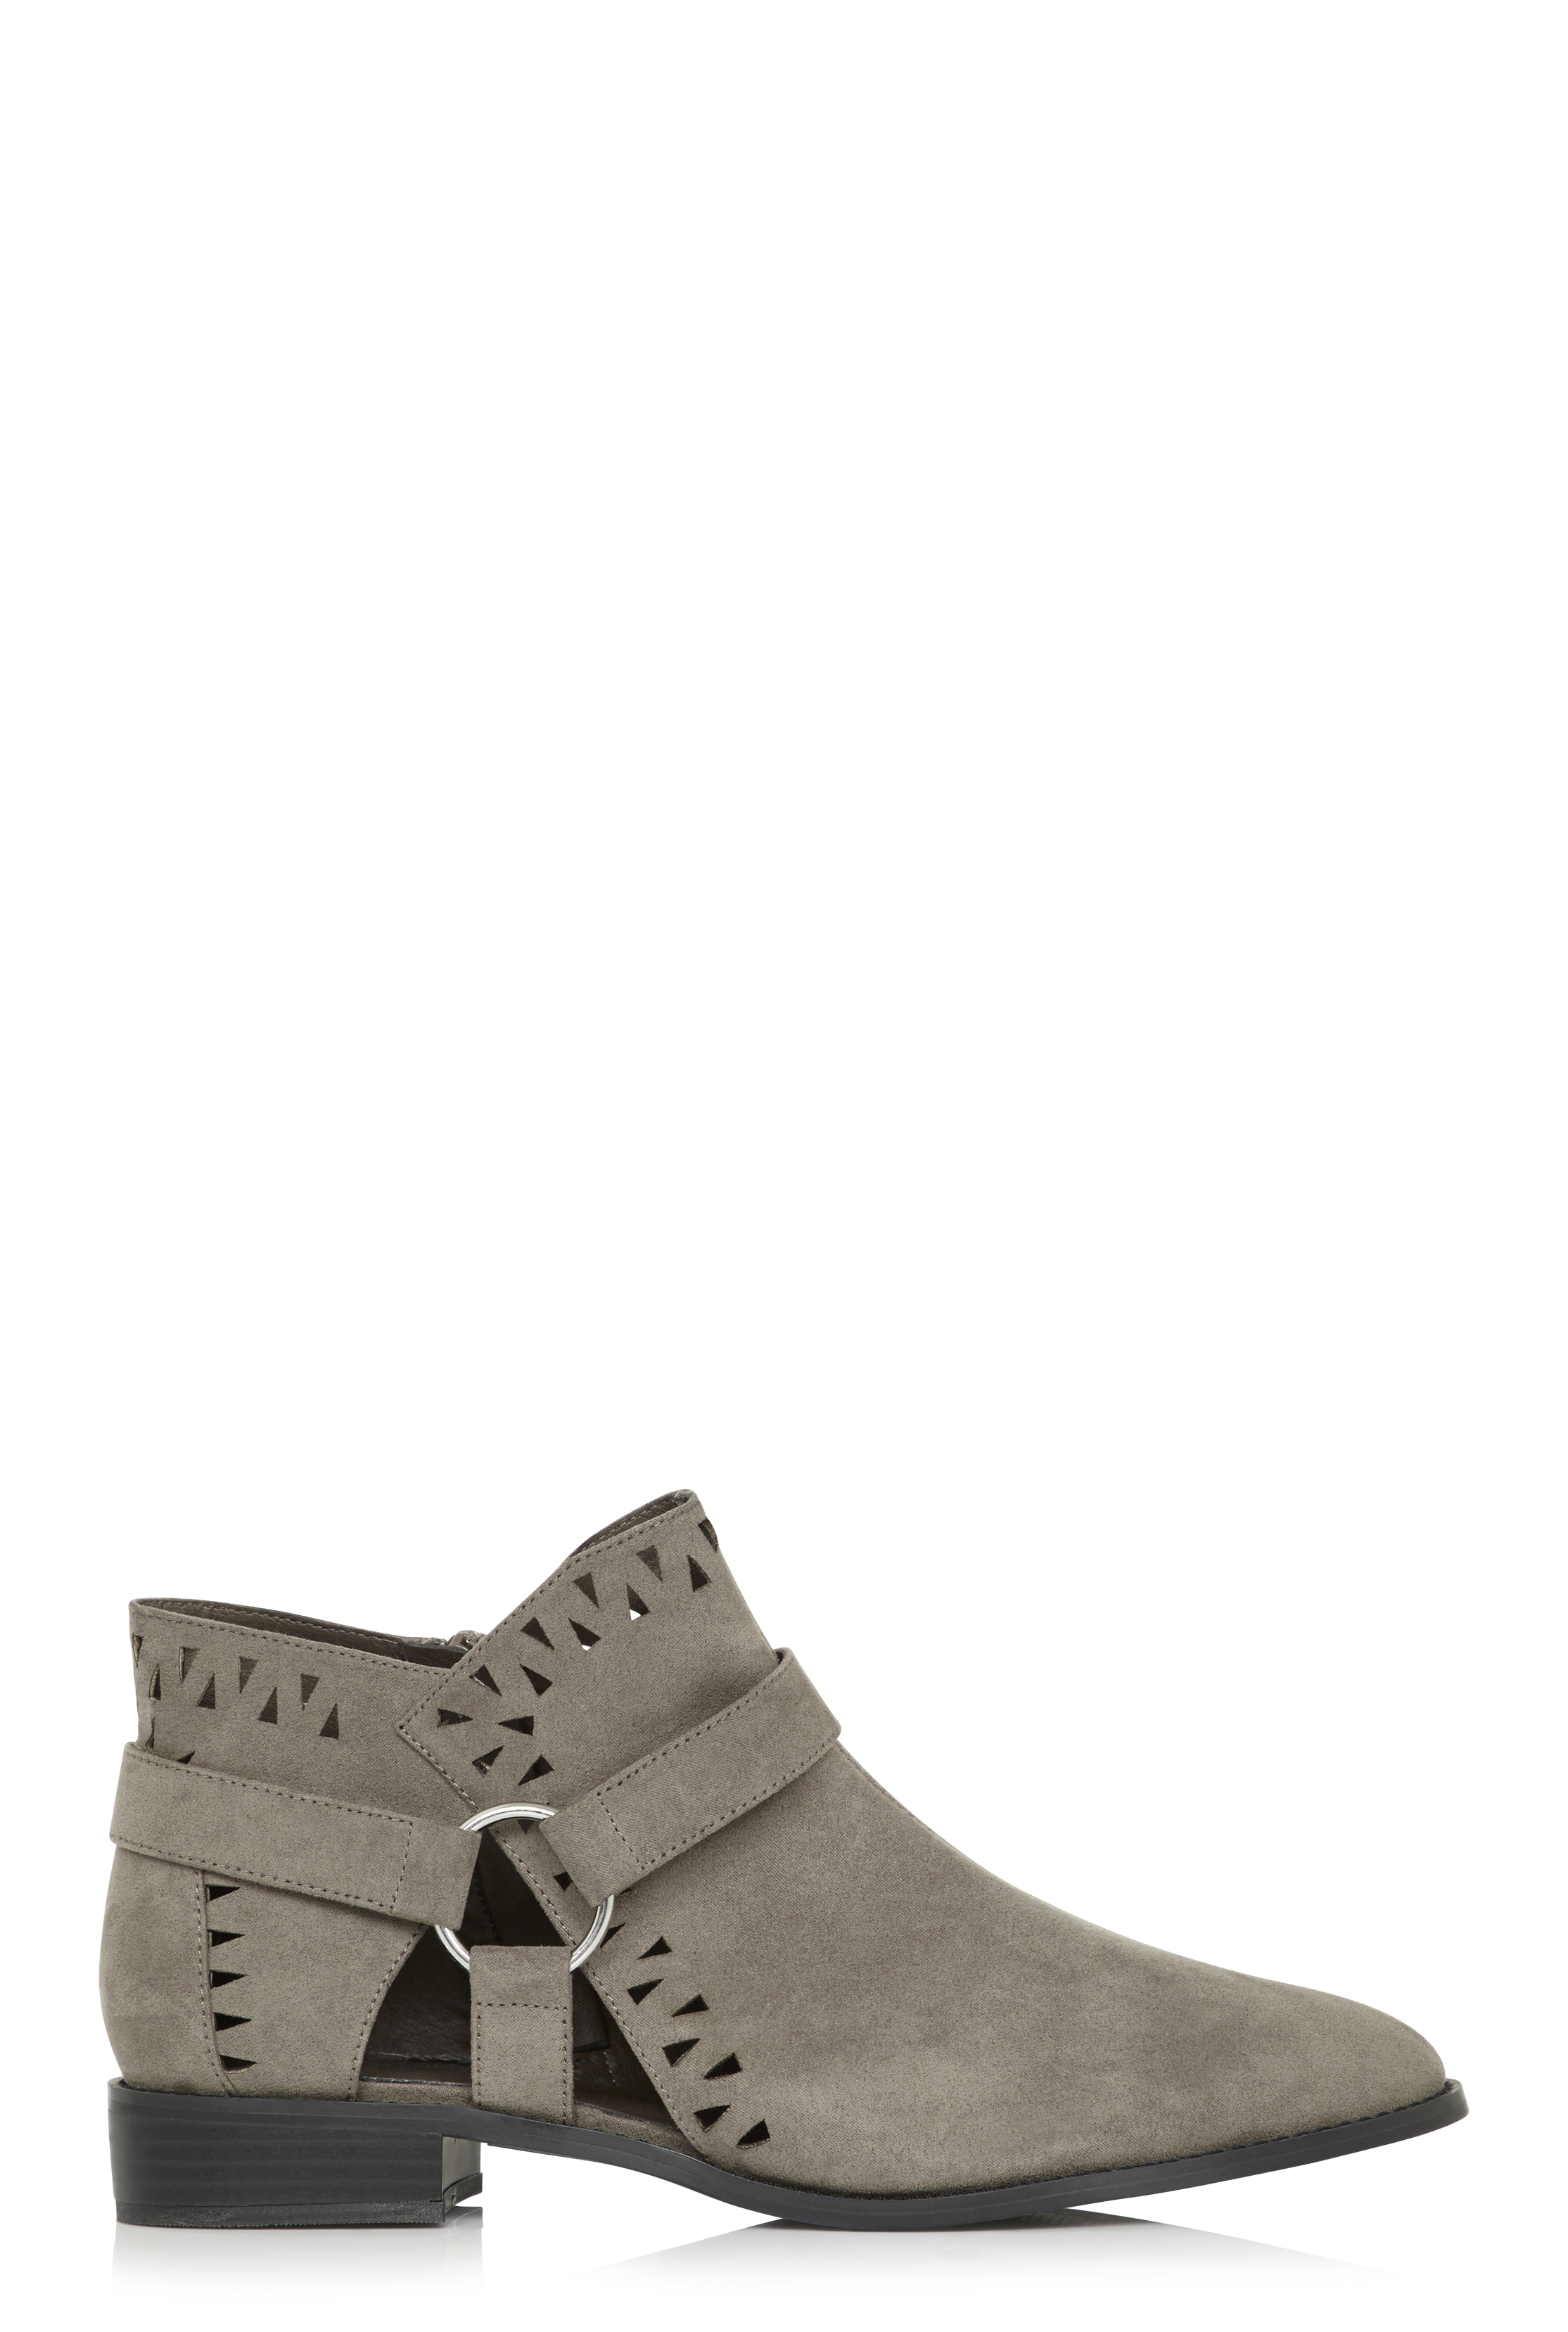 LTS Grey Bryony Cut Out Detail Ankle Boot